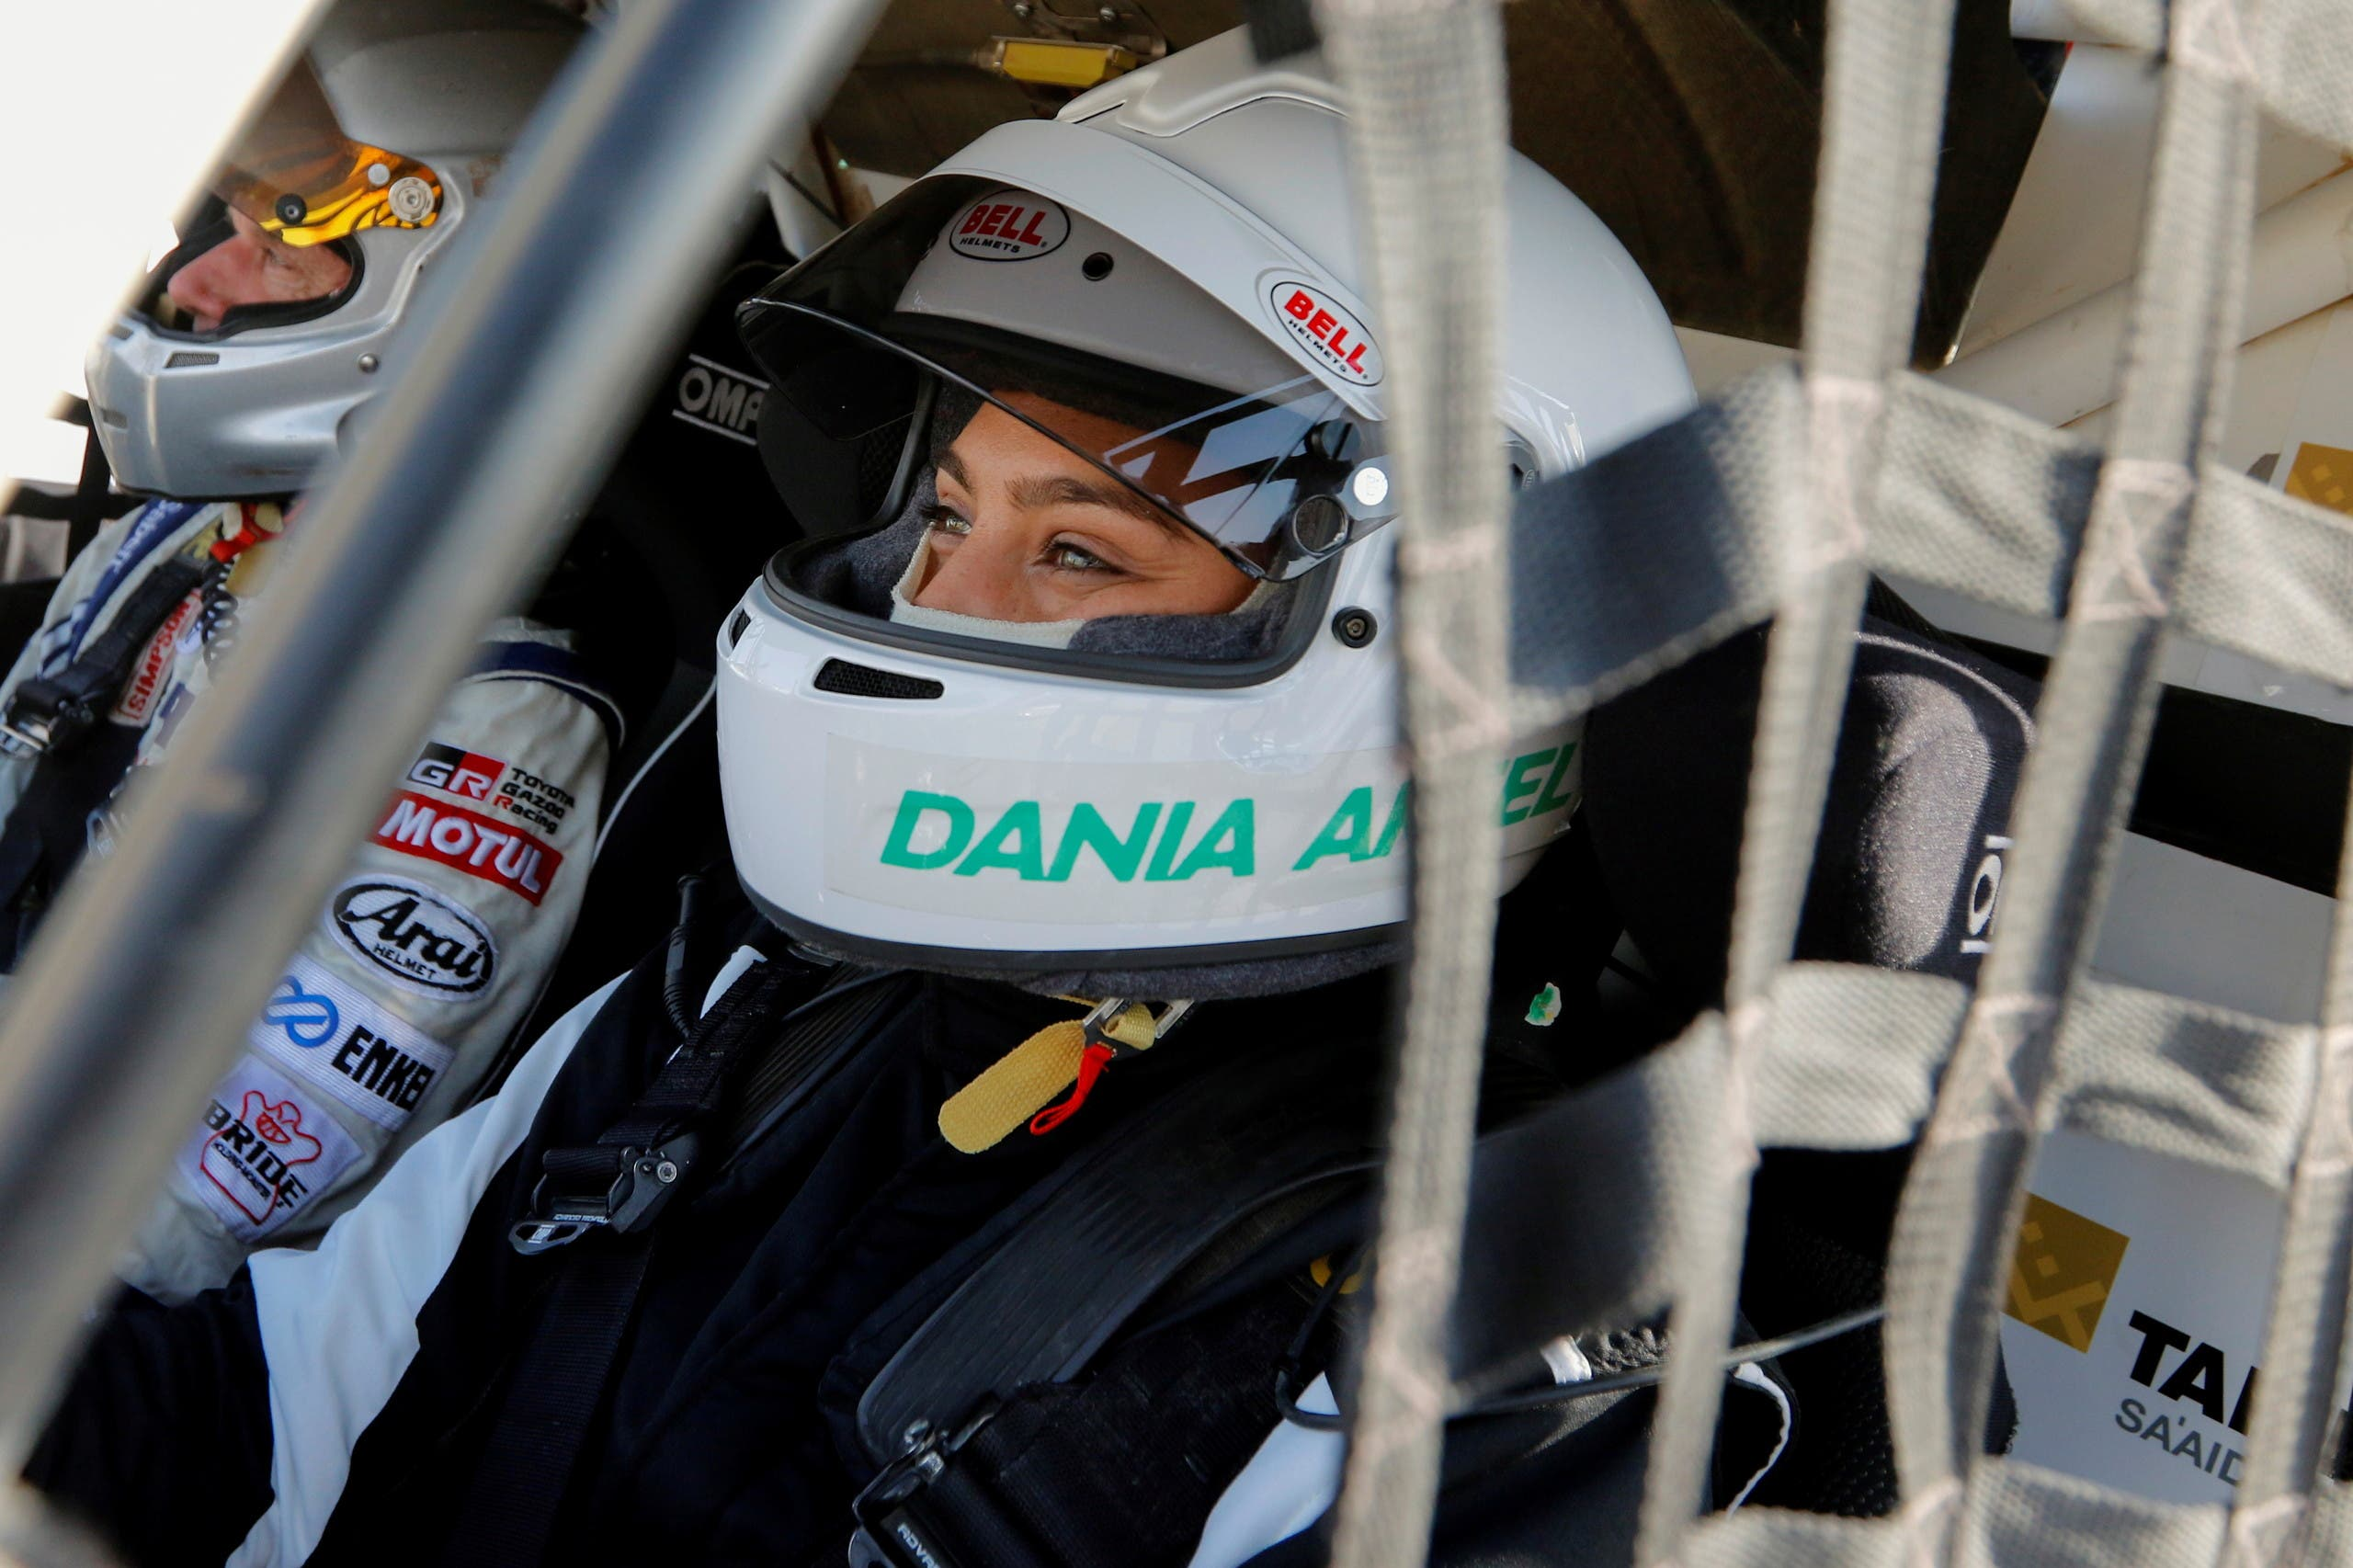 Dania Akeel became the first Arab and Saudi woman to win the 2021 FIA World Cup for Cross-Country Bajas. (Reuters)